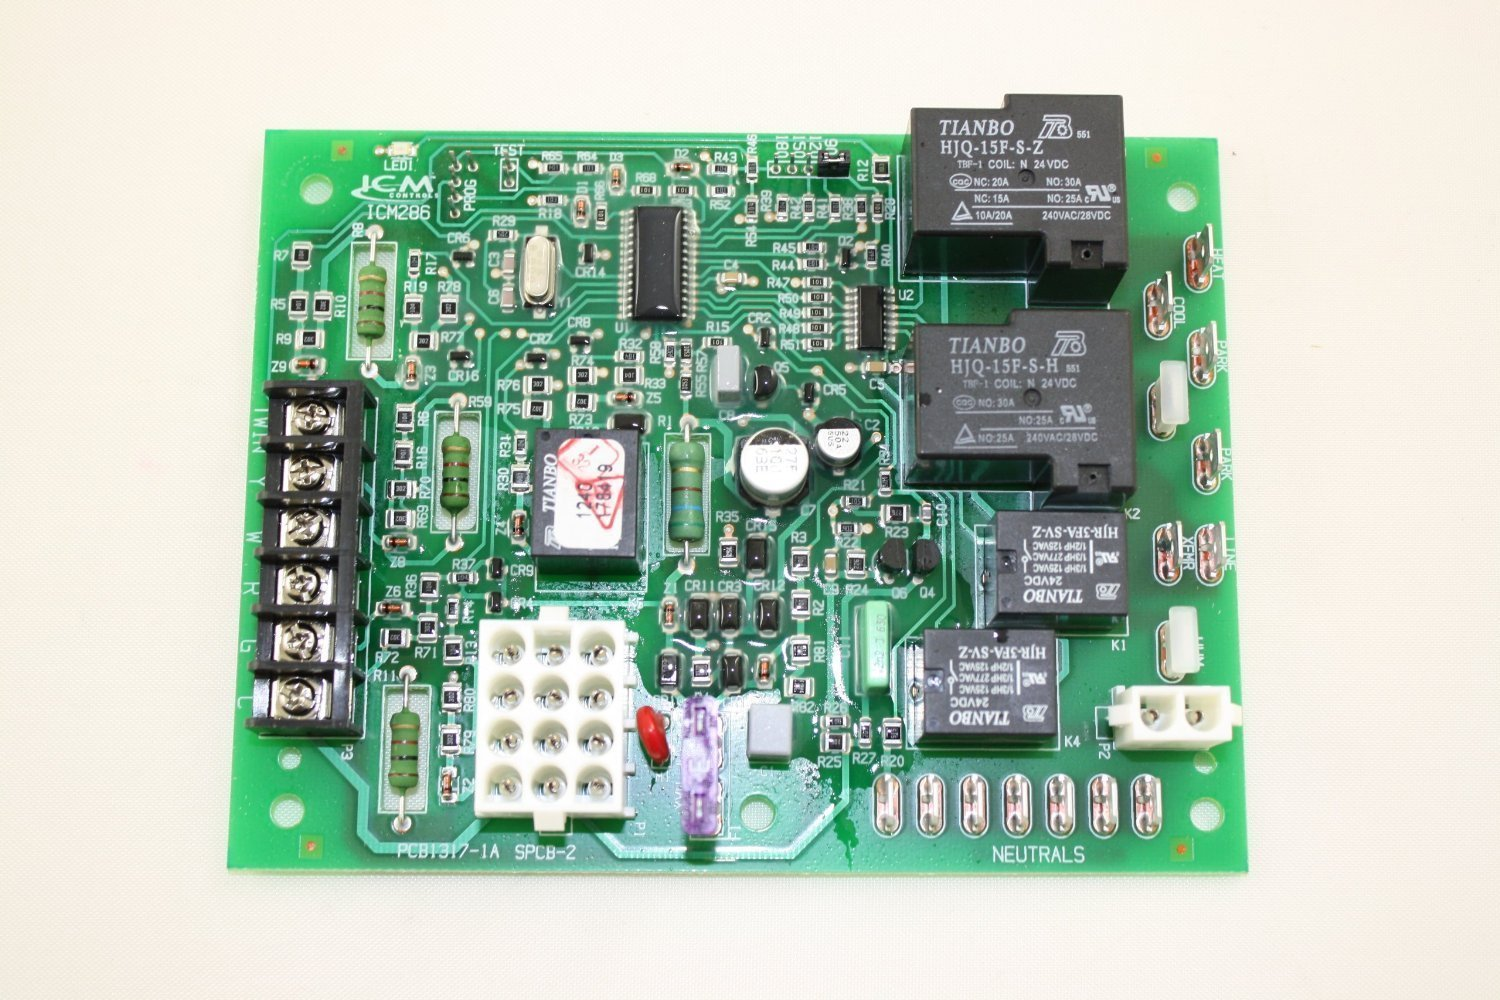 50A55-289 - White Rodgers Aftermarket Furnance Control Board - - Amazon.com